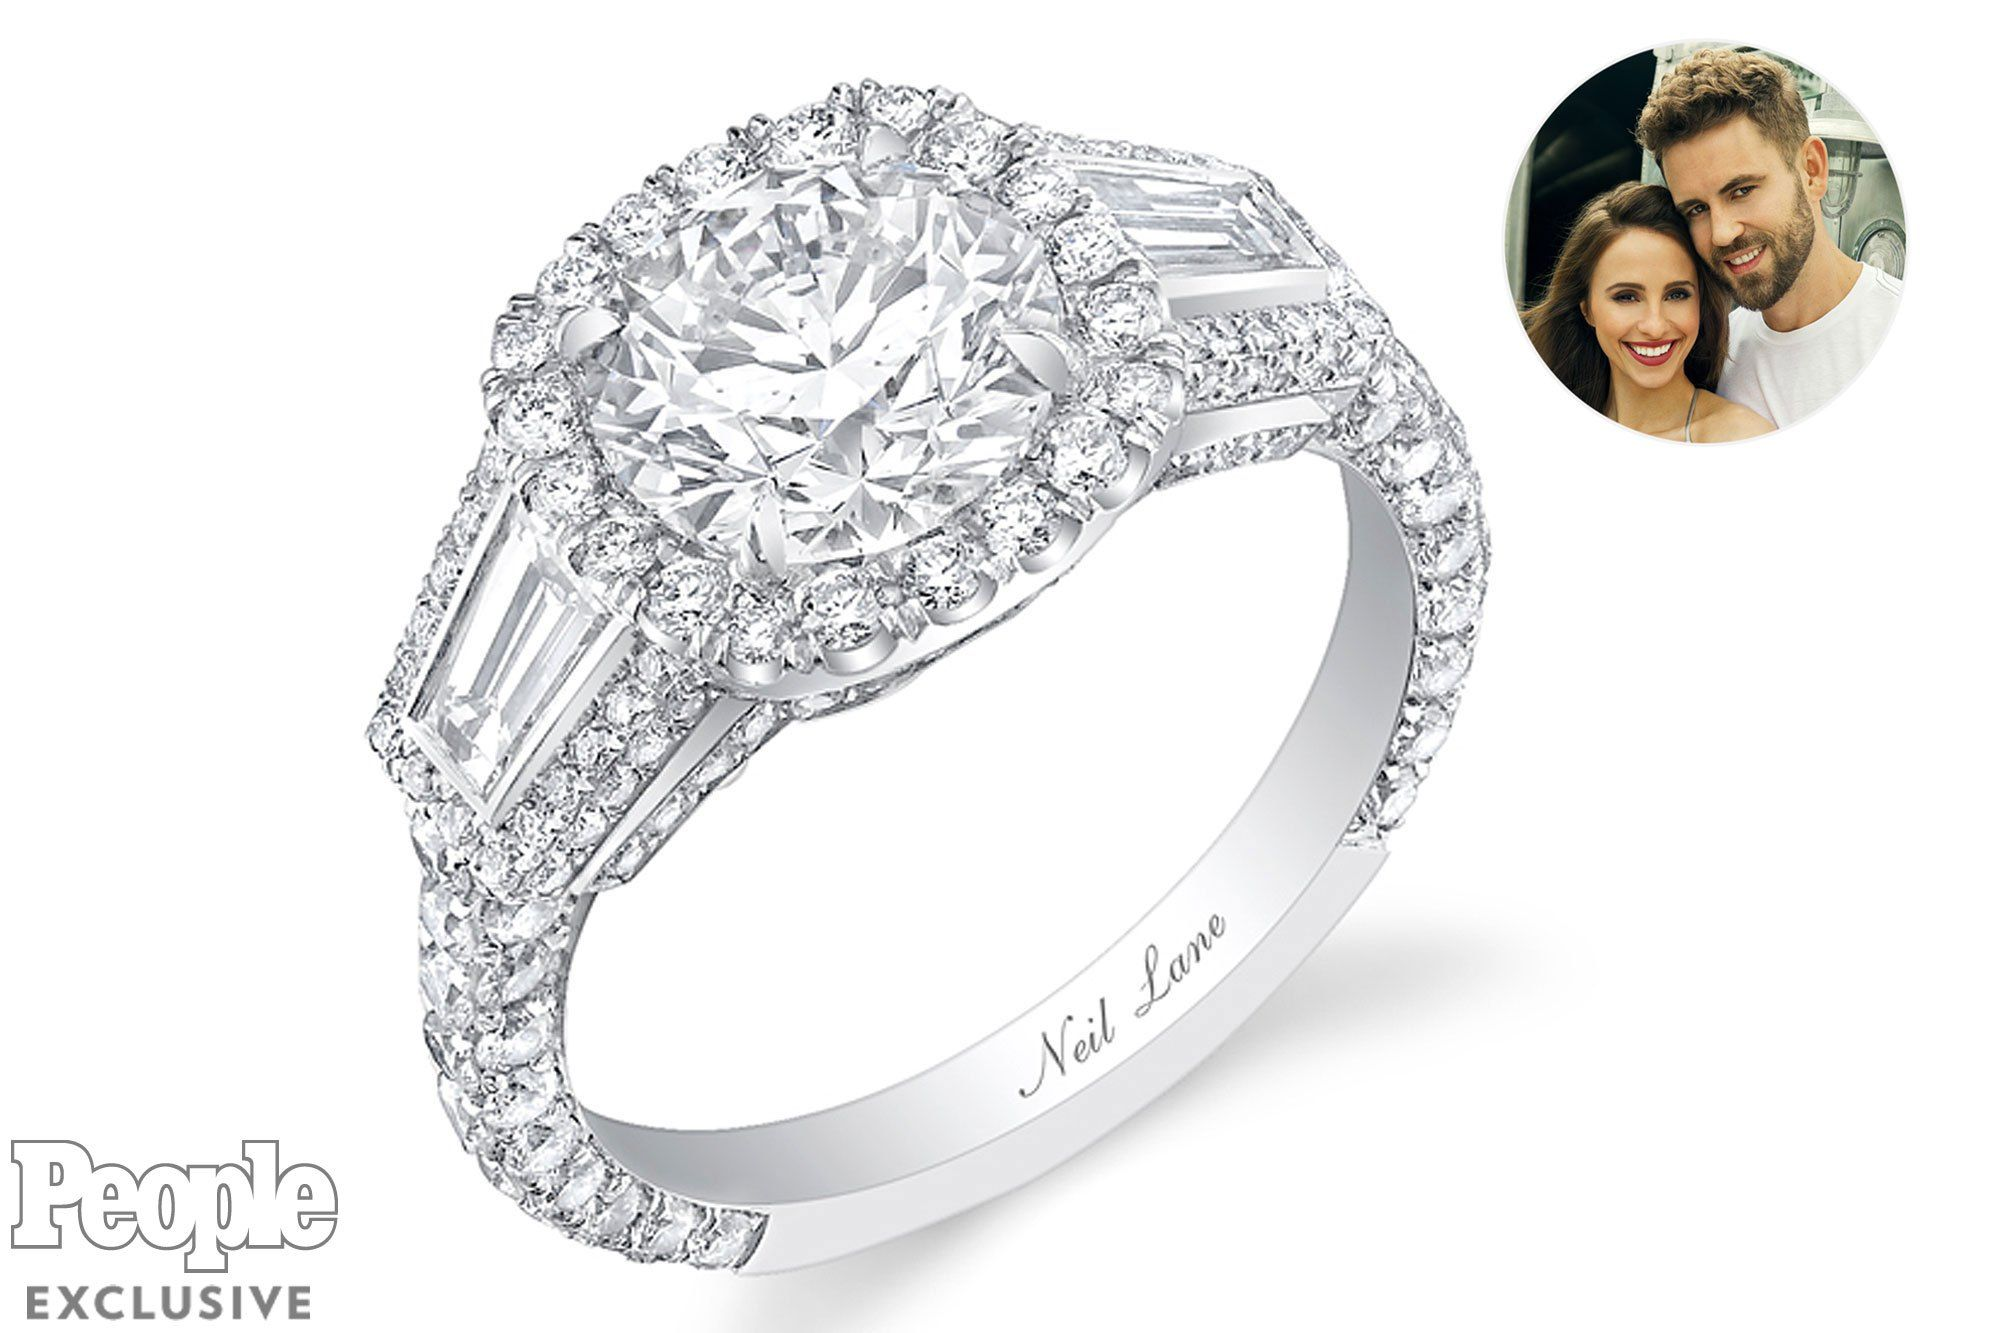 All The Details On The Massive 3 75 Carat Engagement Ring The